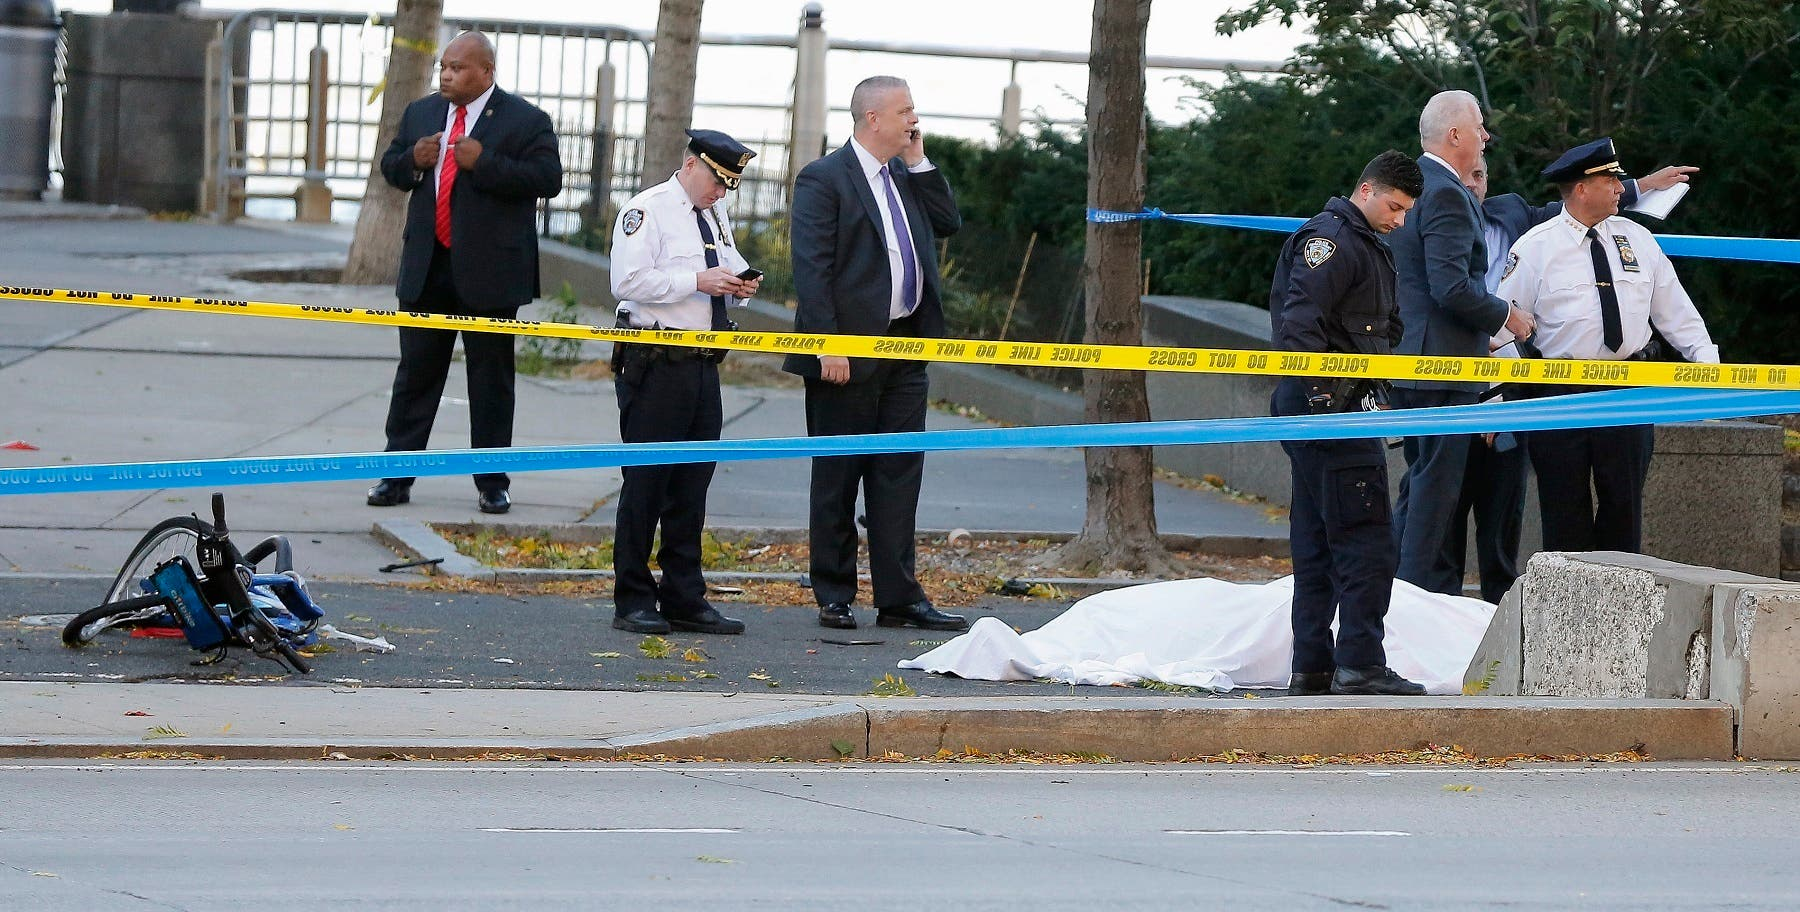 Authorities investigate the scene around a body covered under a white sheet next to a mangled bike along the bike path in New York. (AP)